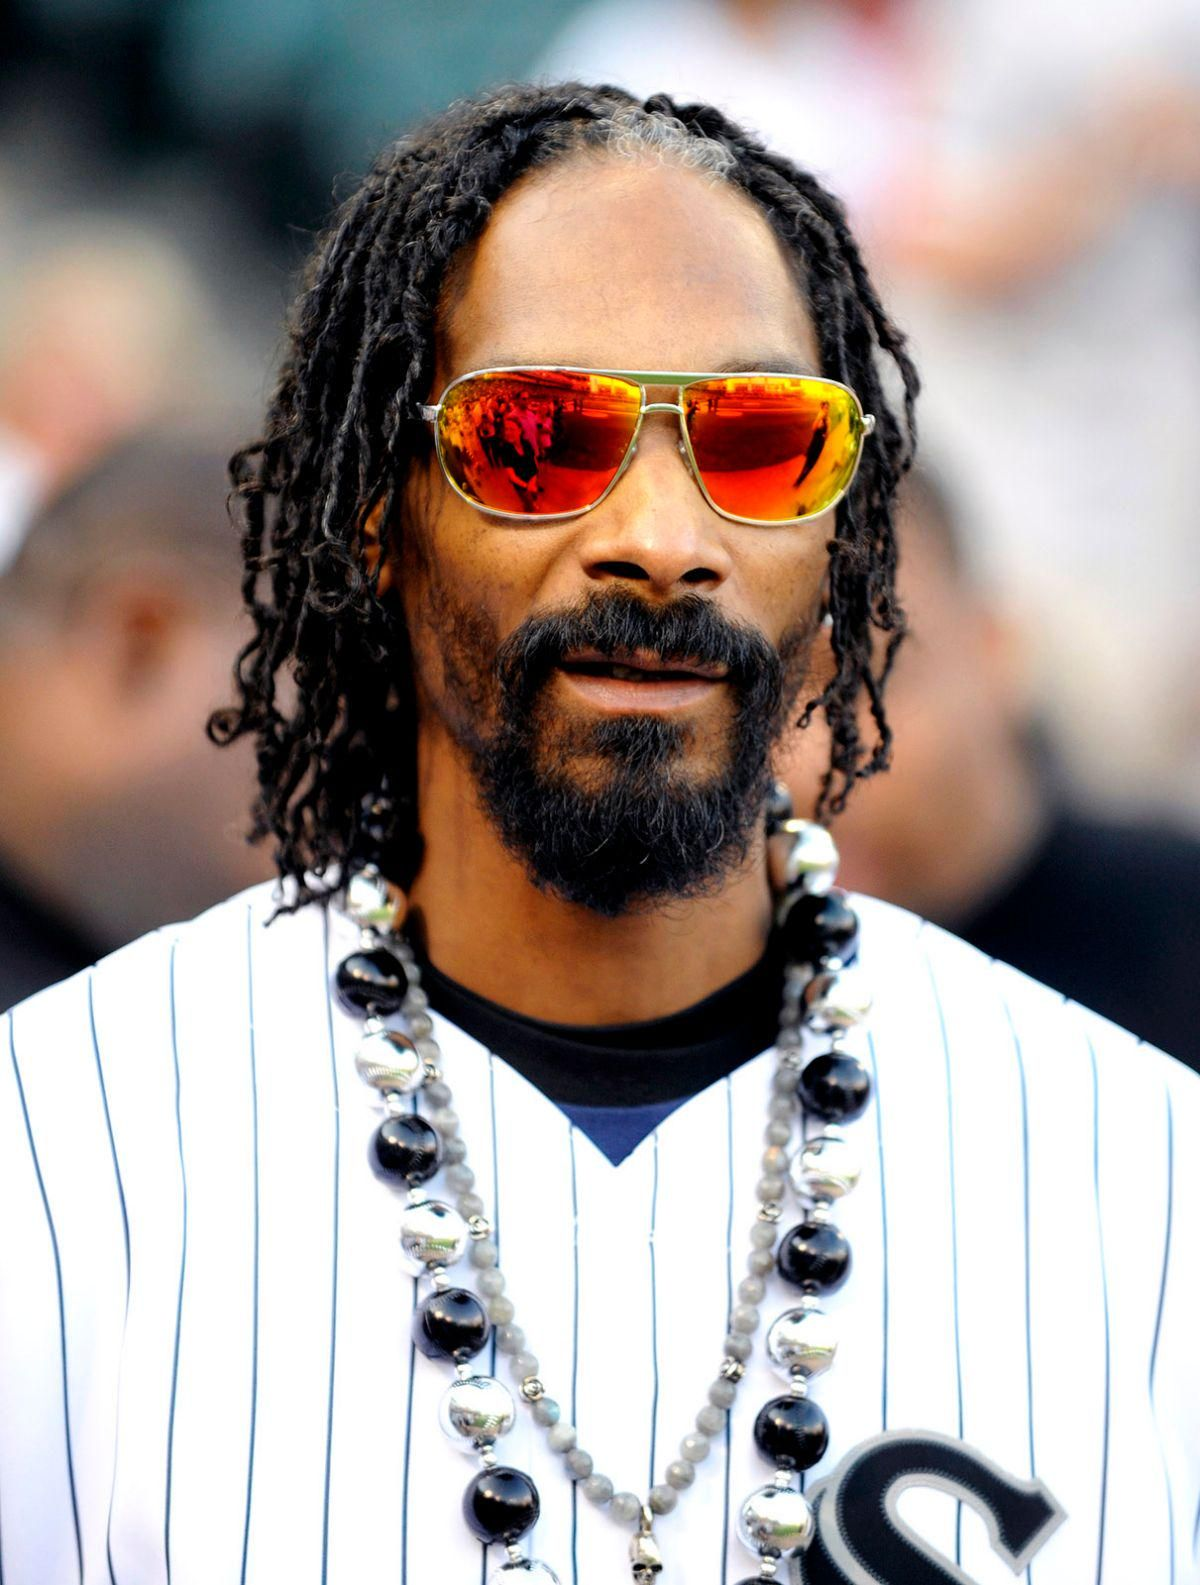 Riders On The Storm Fredwreck Remix Snoop Dogg Letras